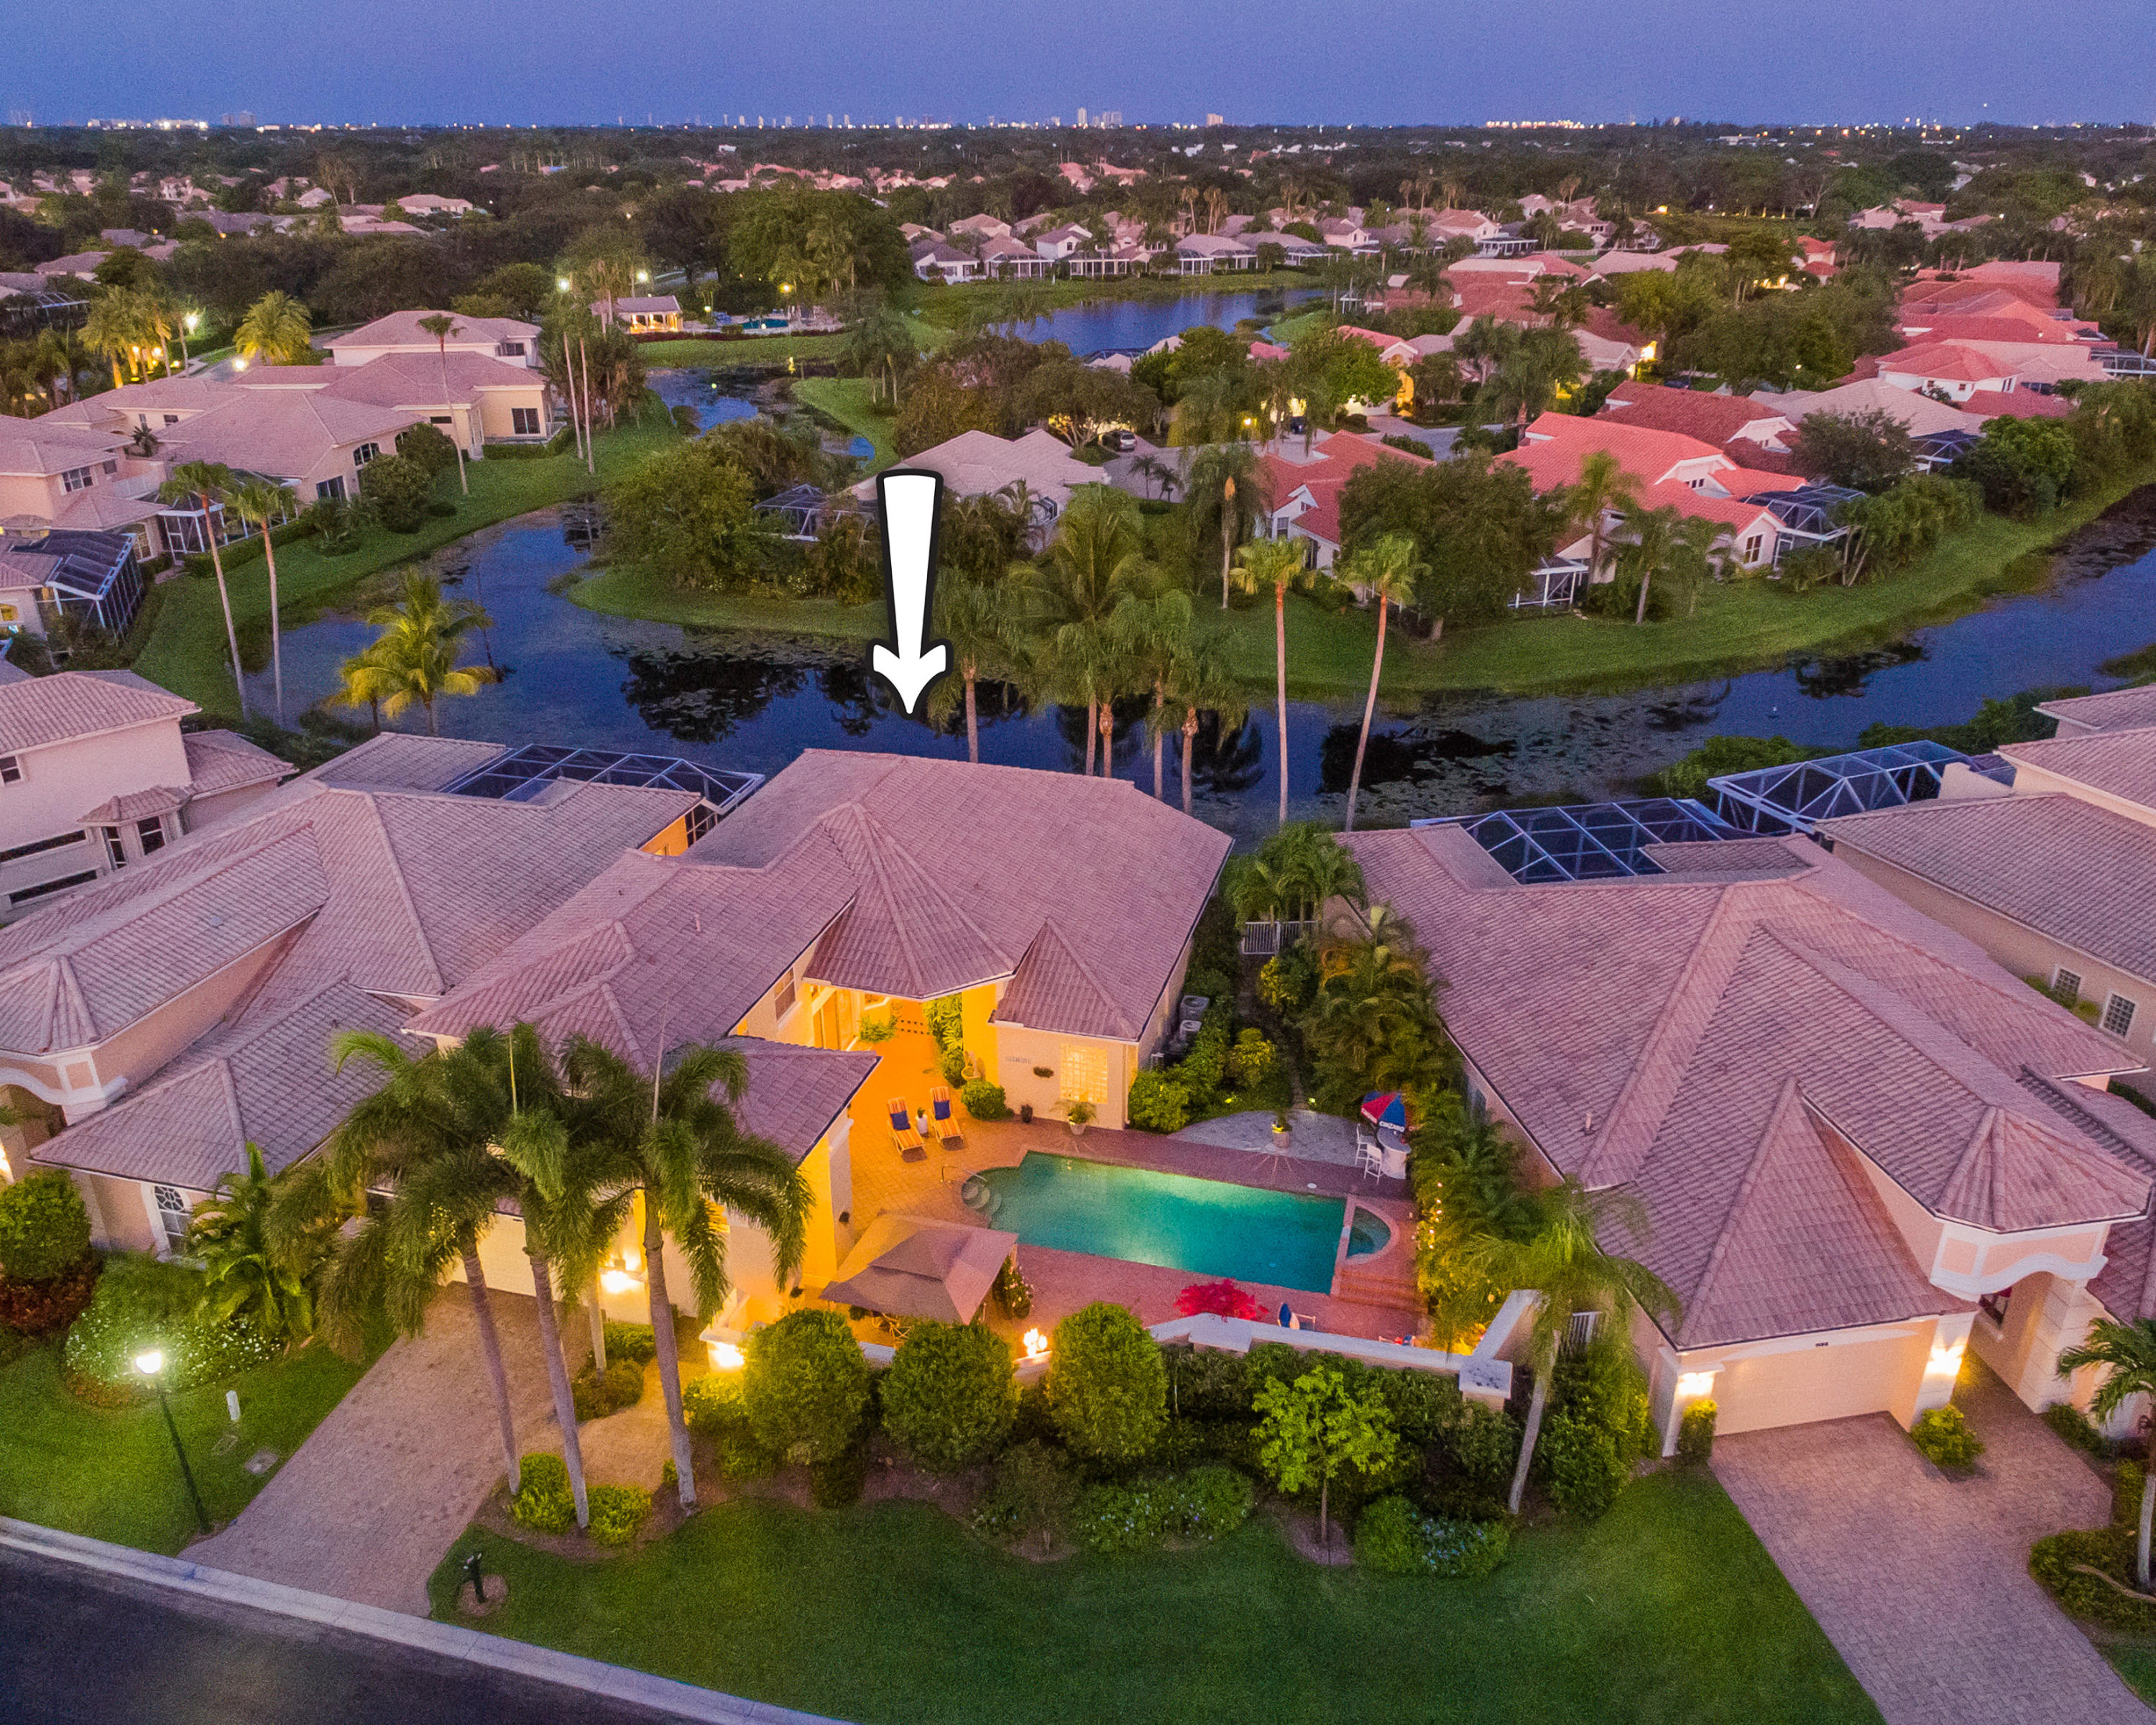 1134 Grand Cay Drive, Palm Beach Gardens, Florida 33418, 4 Bedrooms Bedrooms, ,4.1 BathroomsBathrooms,F,Single family,Grand Cay,RX-10444648